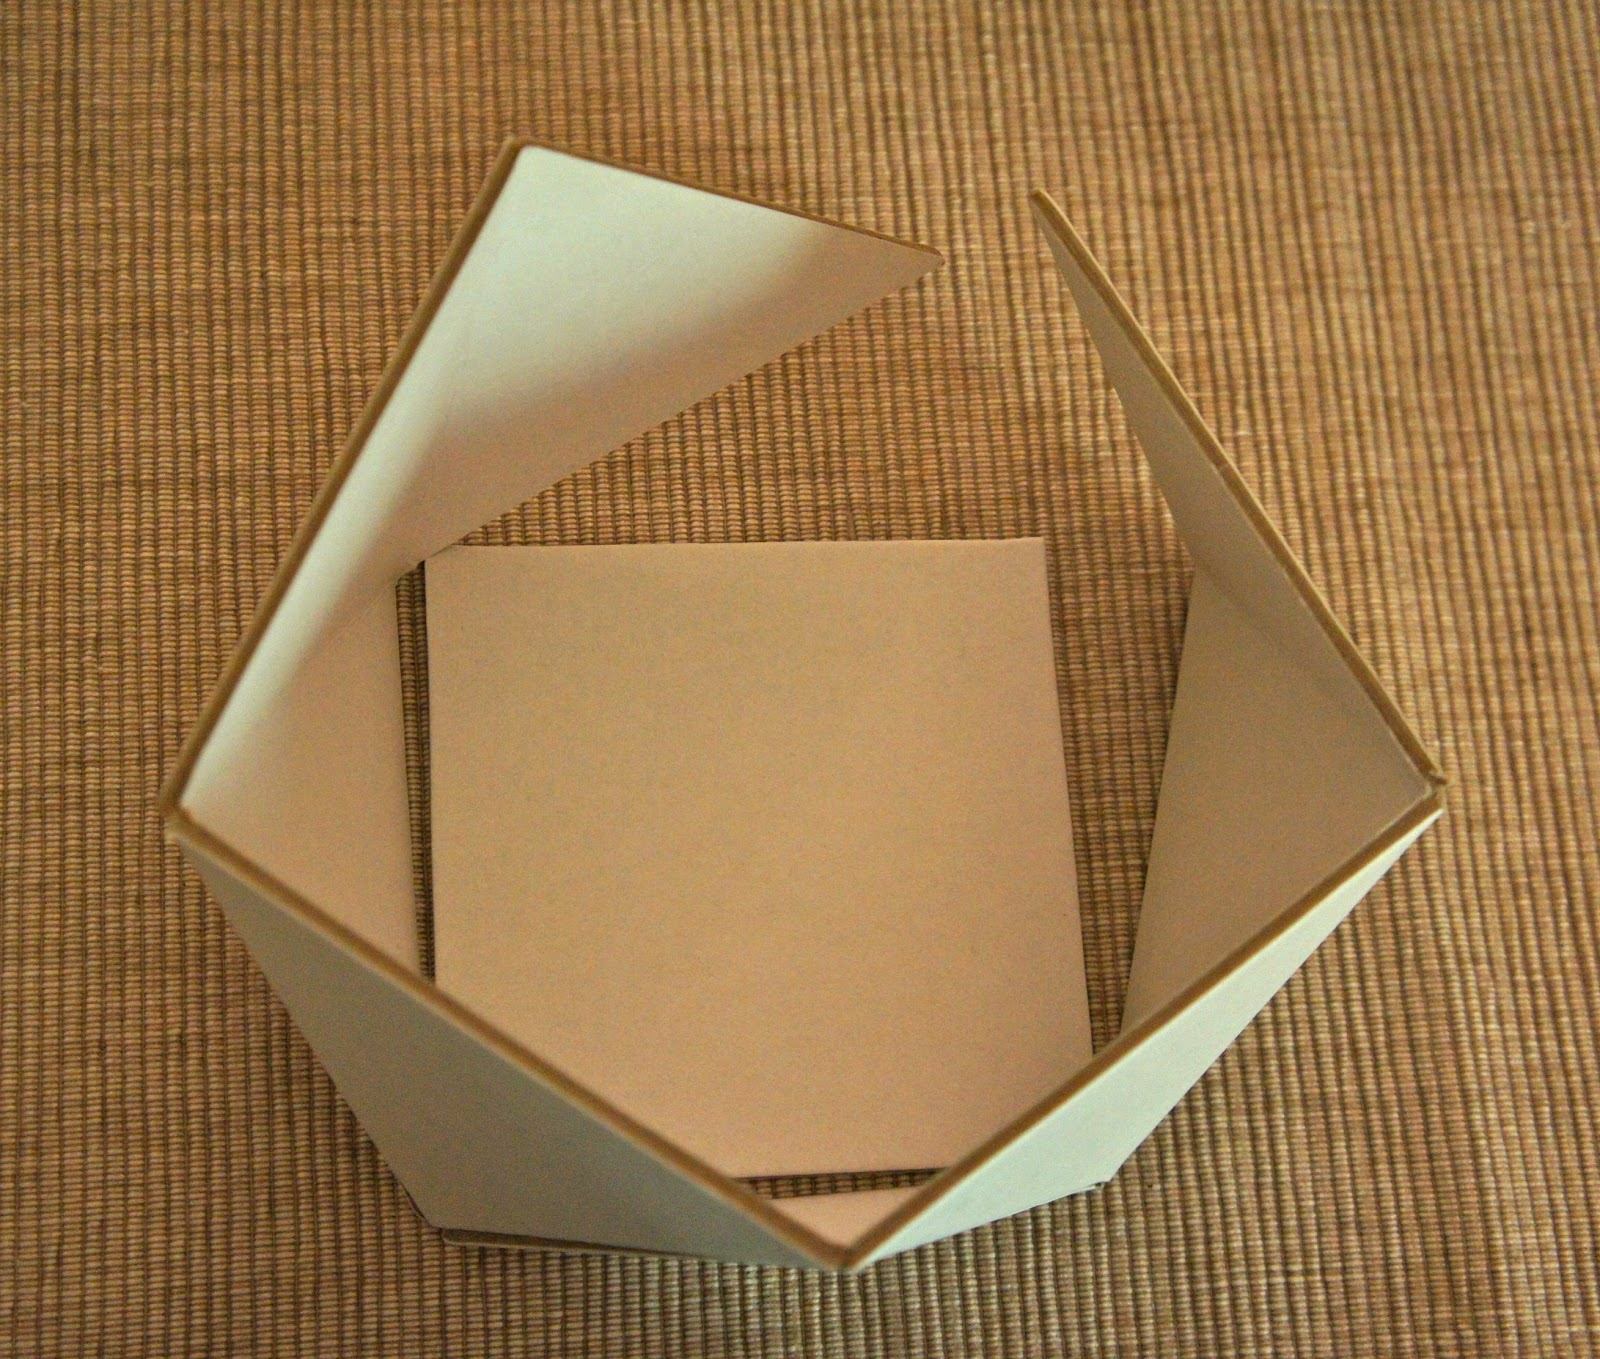 How to make 3d square out of paper